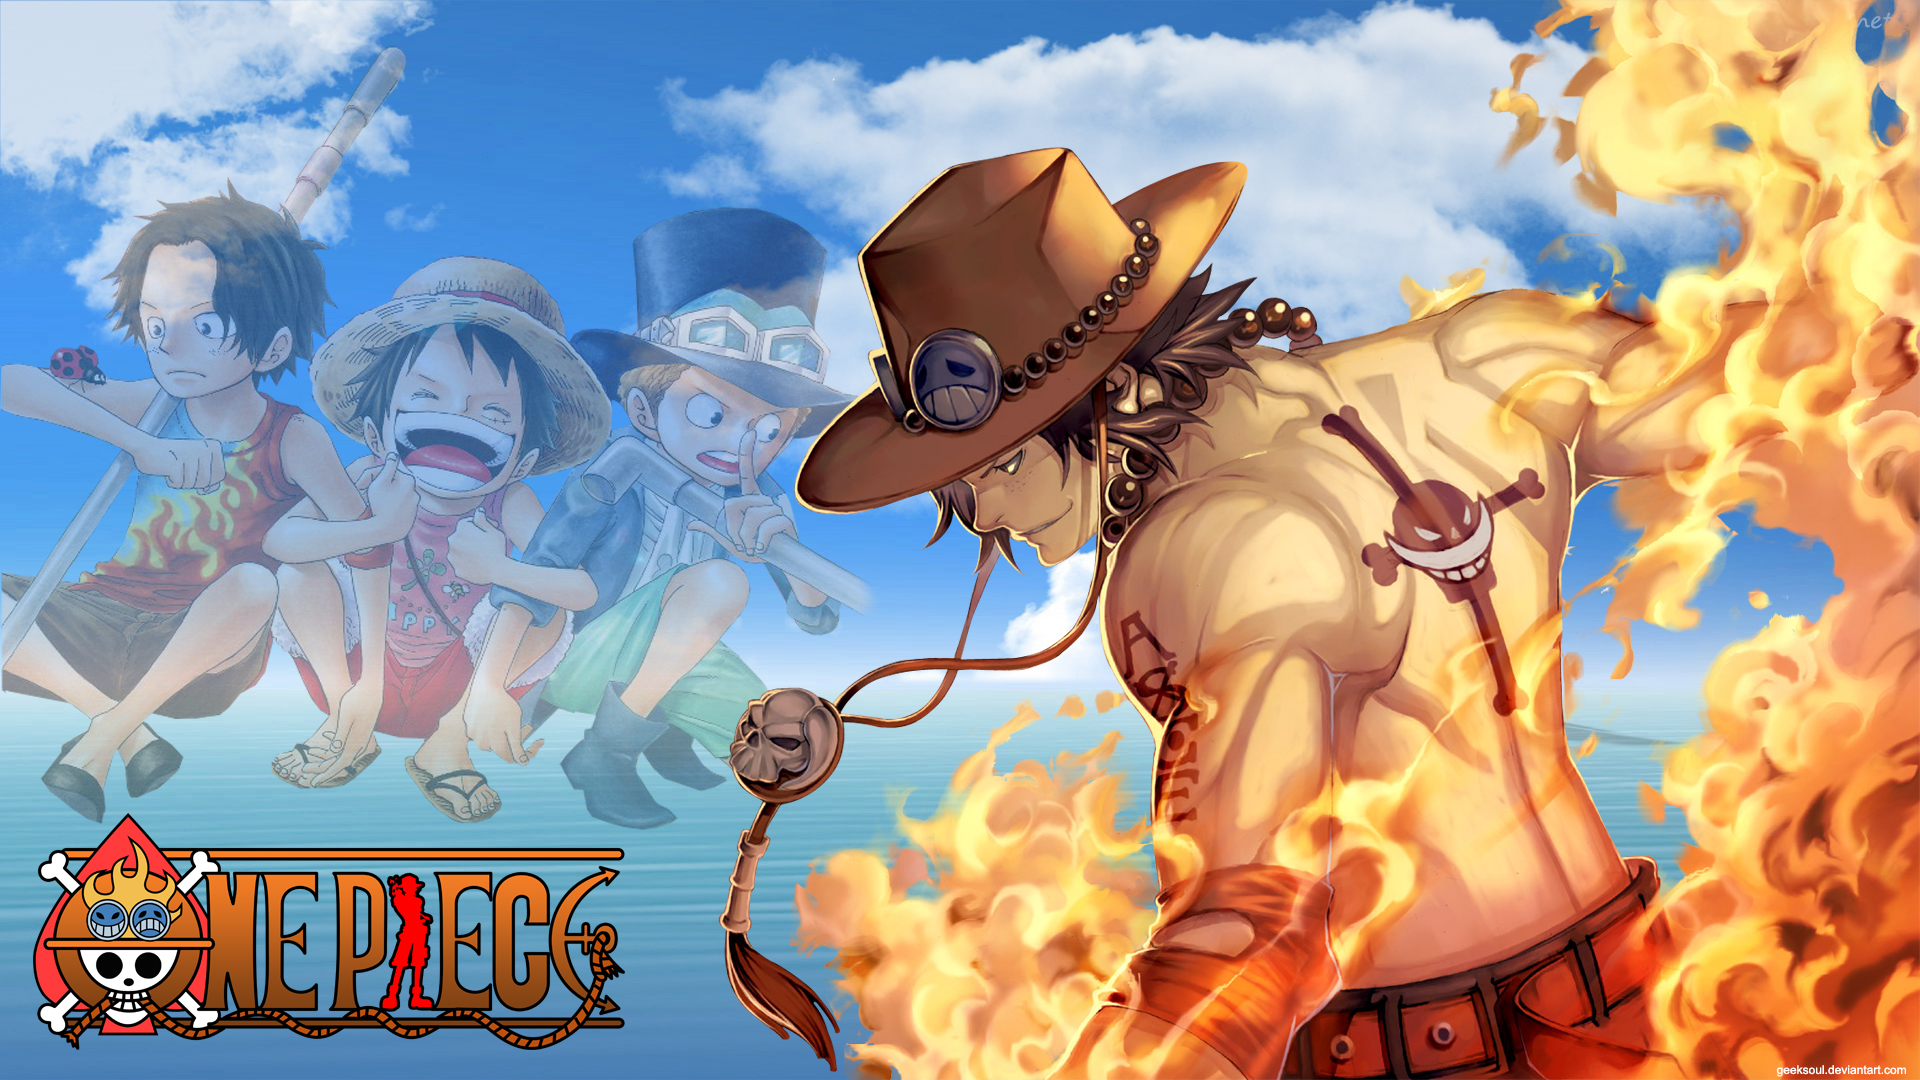 One Piece Ace HD Wallpaper by Geeksoul | Daily Anime Art